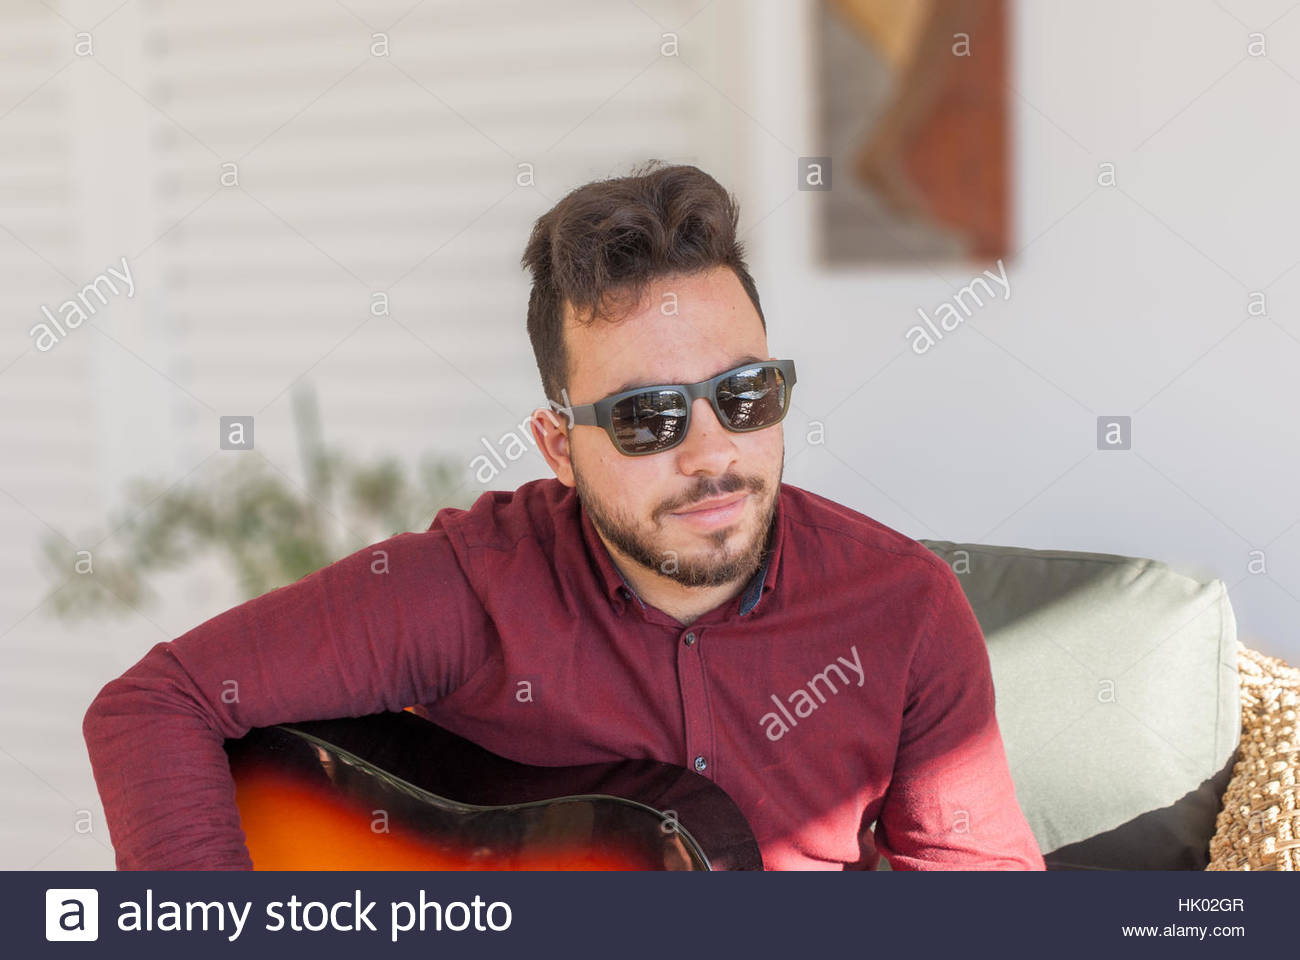 Young man with sunglasses playing acoustical guitar - Stock Photo